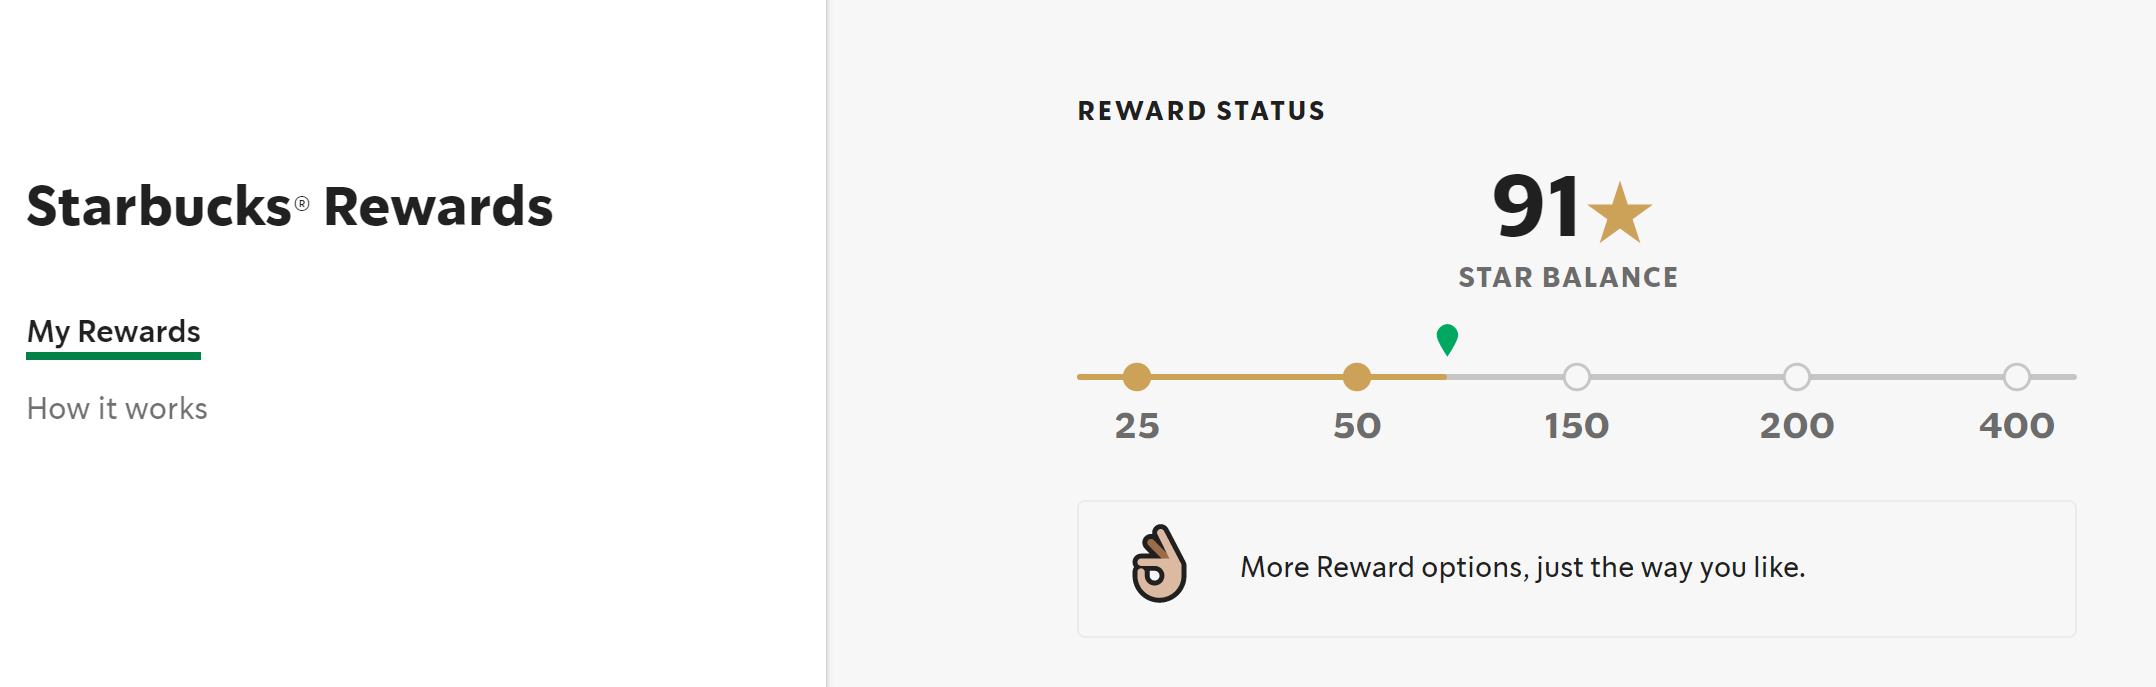 If you want free Starbucks, then Starbucks rewards is a great way to make that happen.